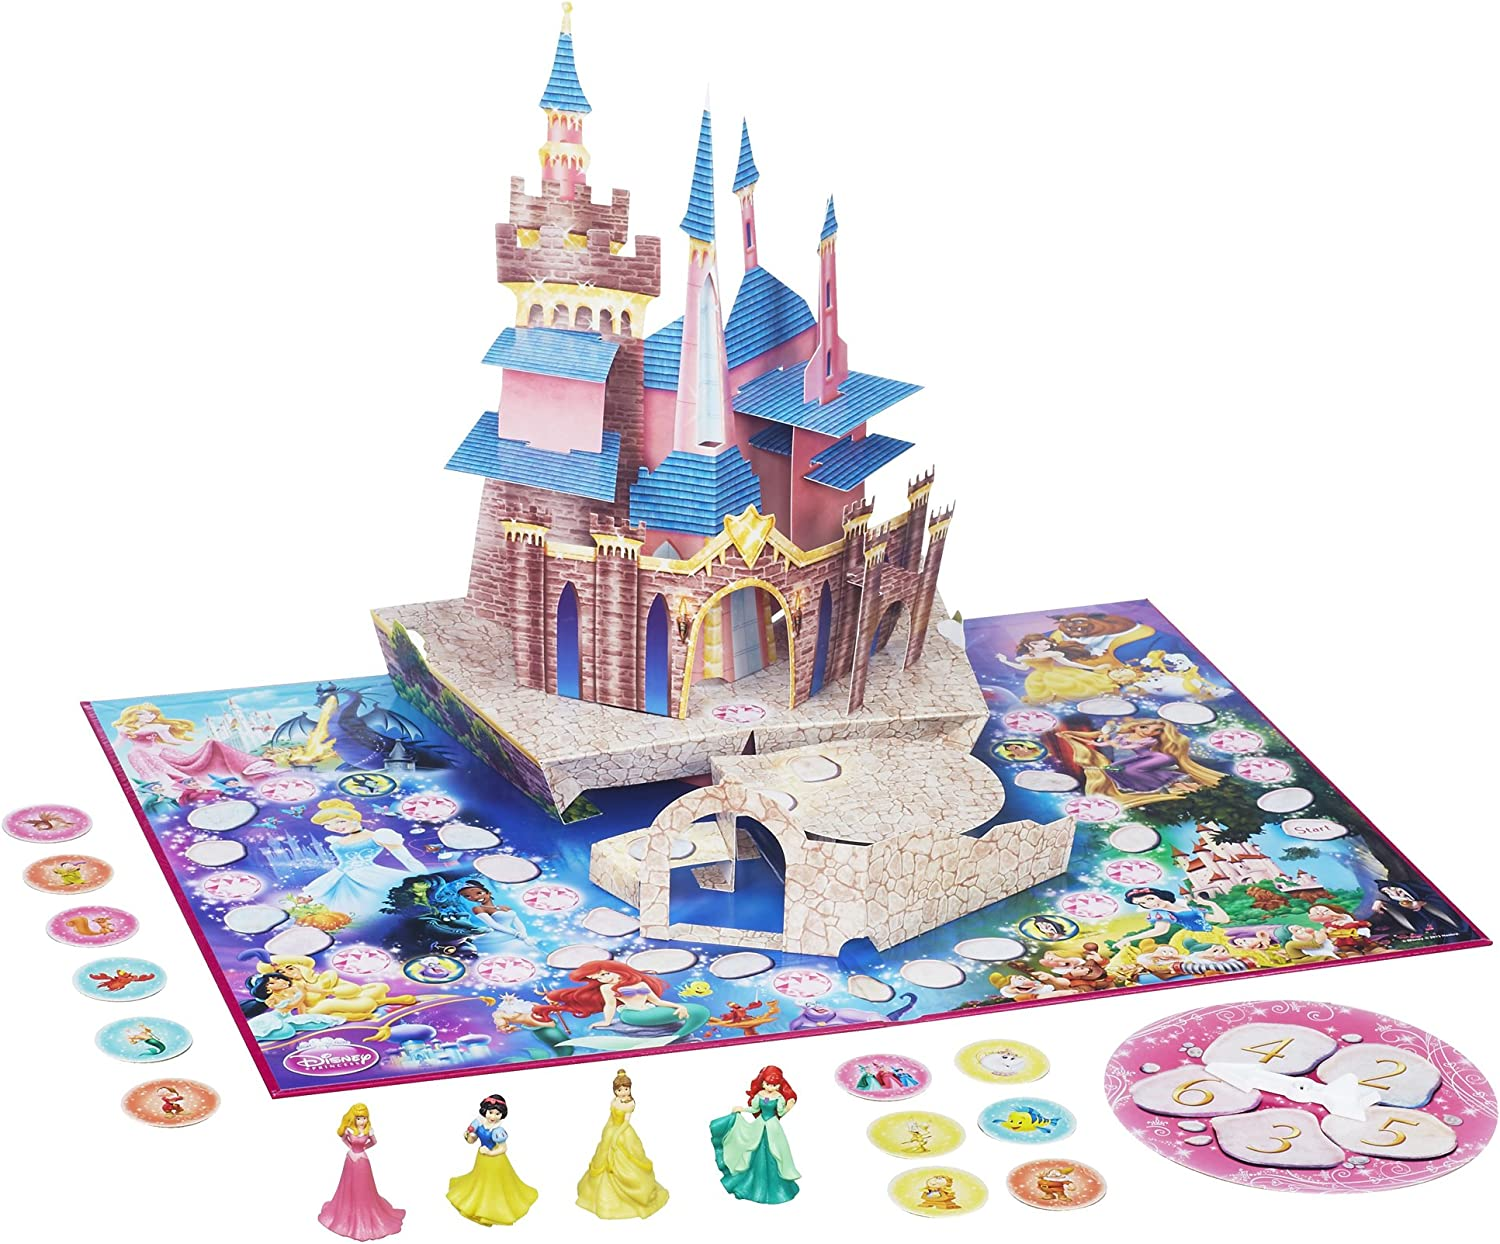 50+ Best Gift Ideas & Toys for 4 Year Old Girls (2020 Updated) 1